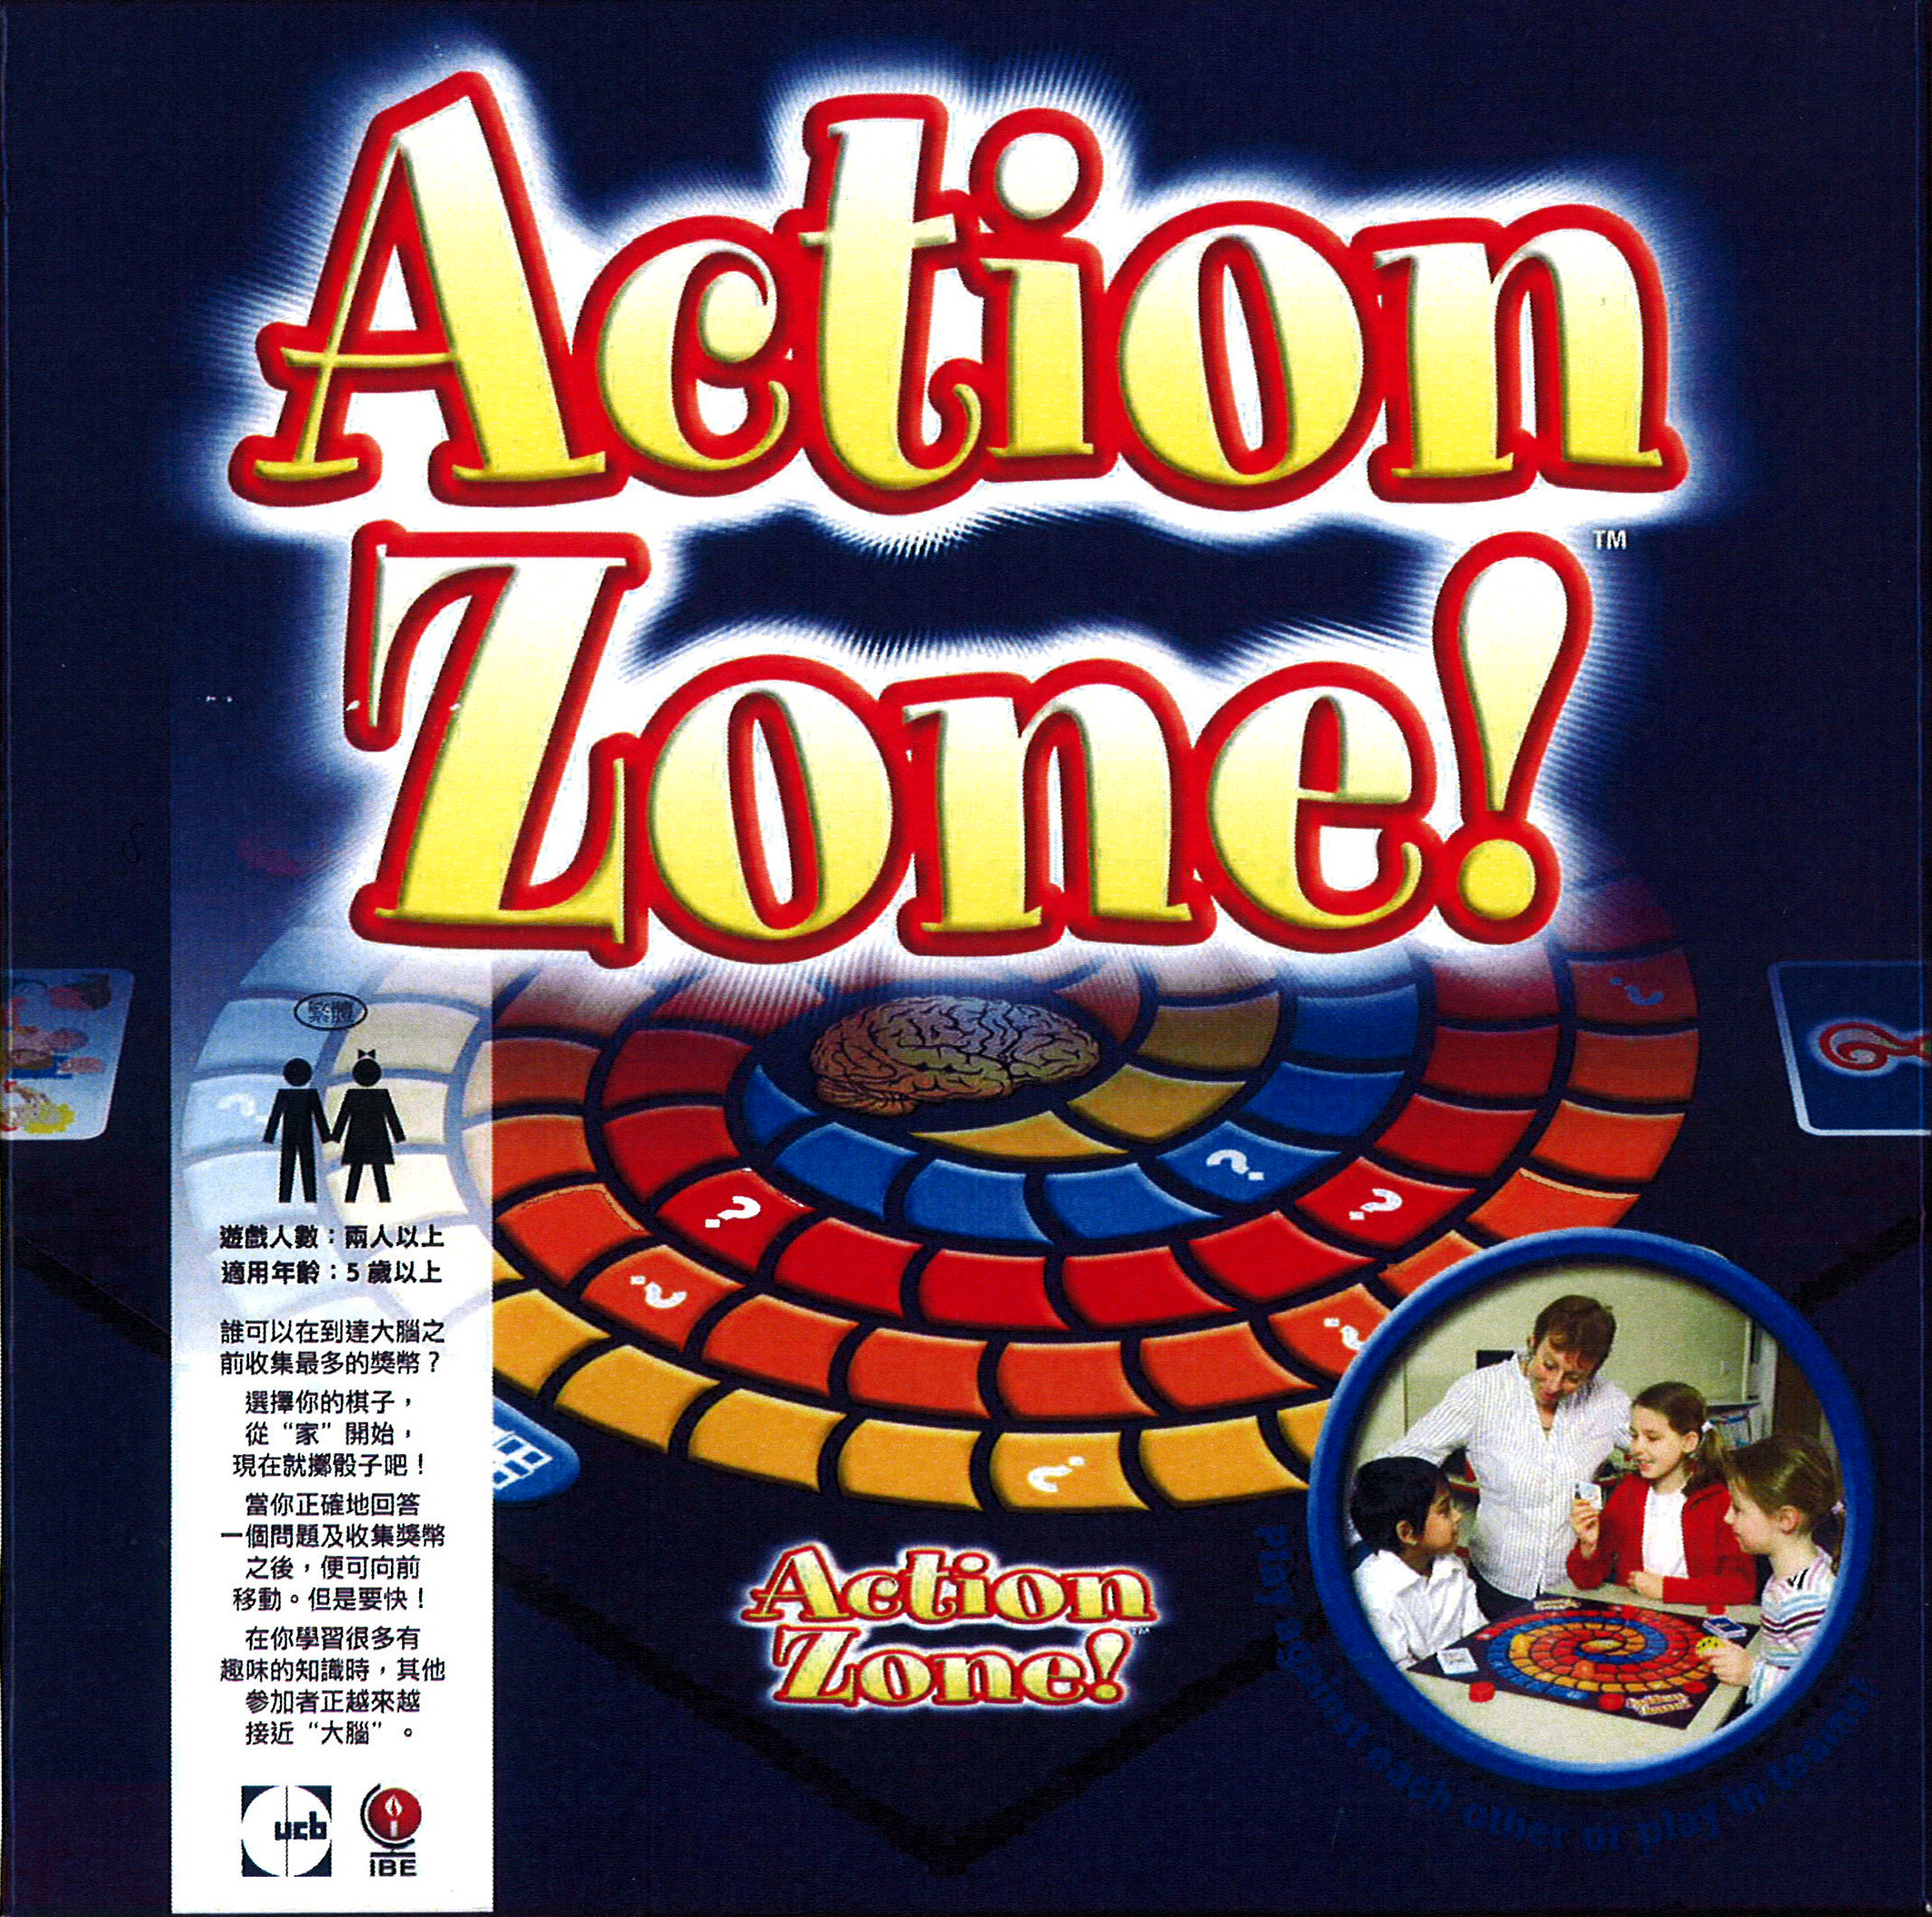 Image: Action Zone!™ - A game to know more about epilepsy